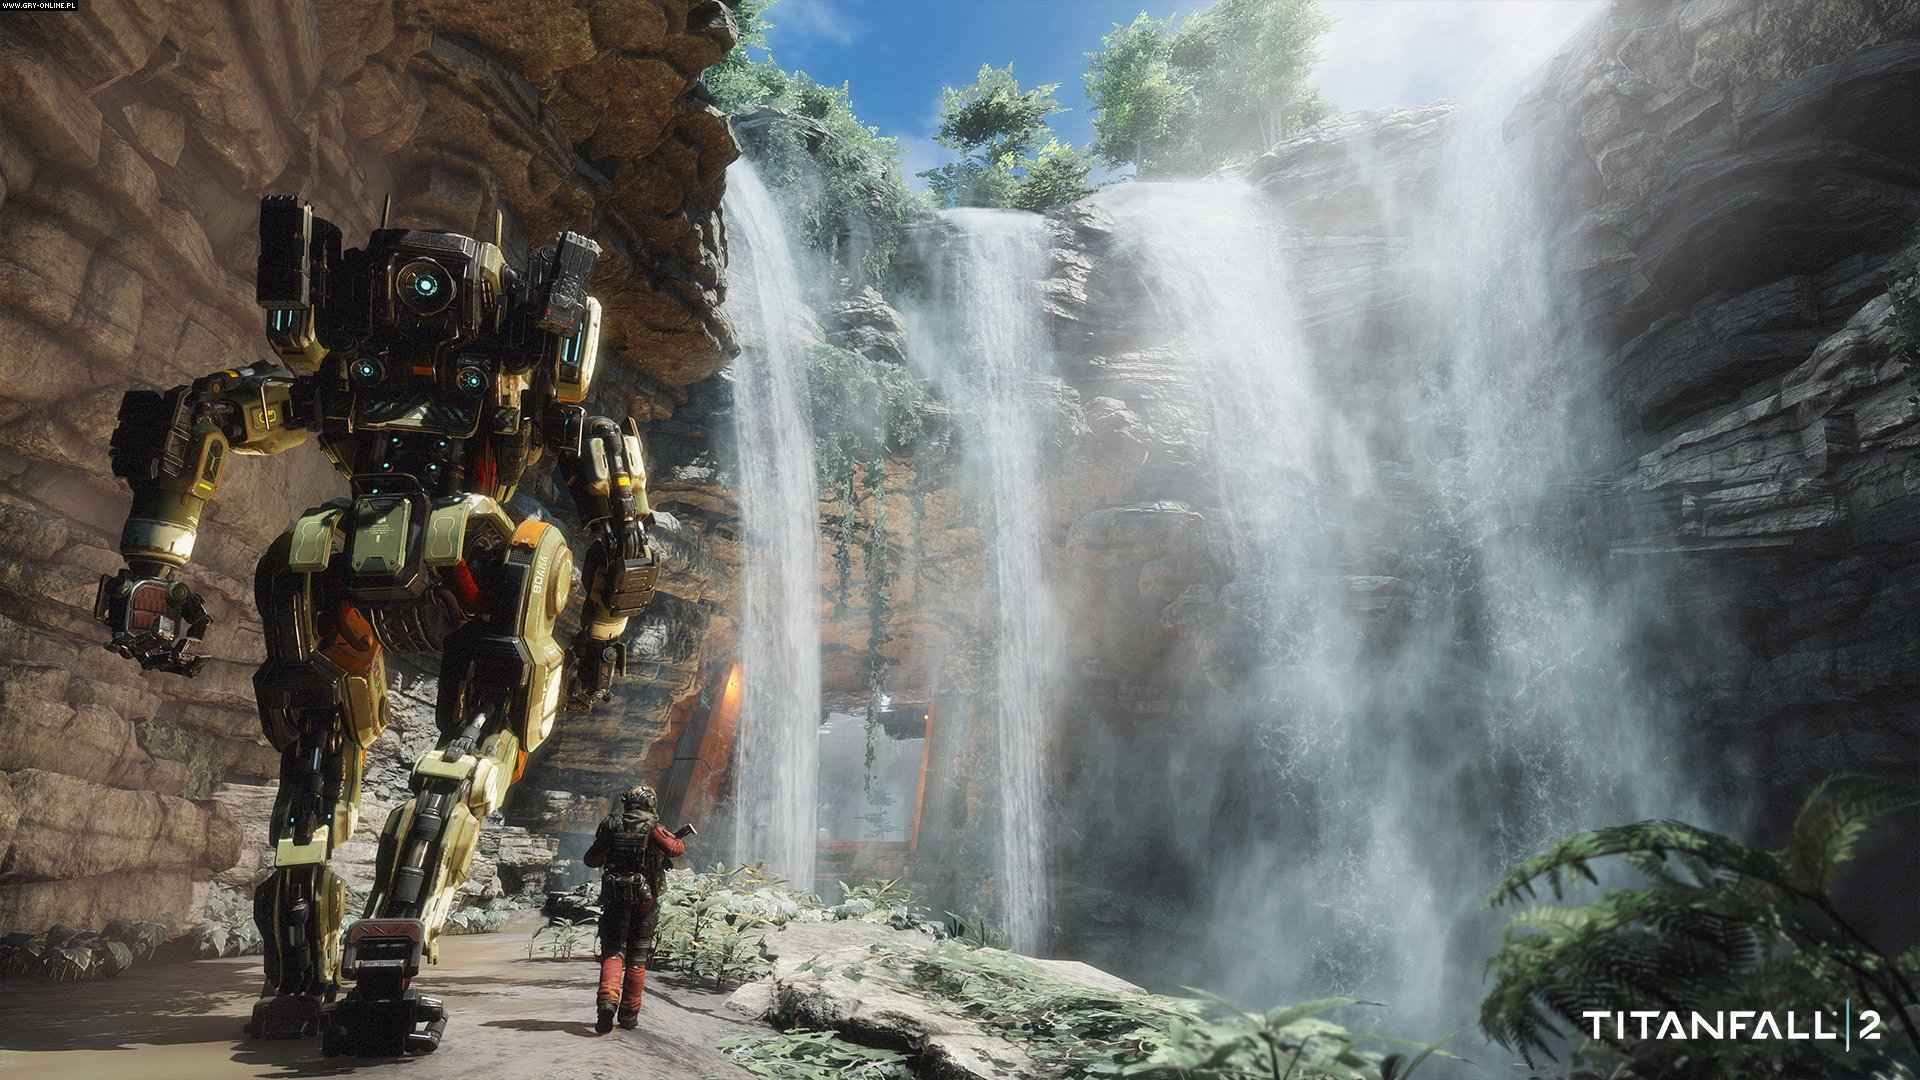 Titanfall 2 PC, PS4, XONE Games Image 6/10, Respawn Entertainment, Electronic Arts Inc.